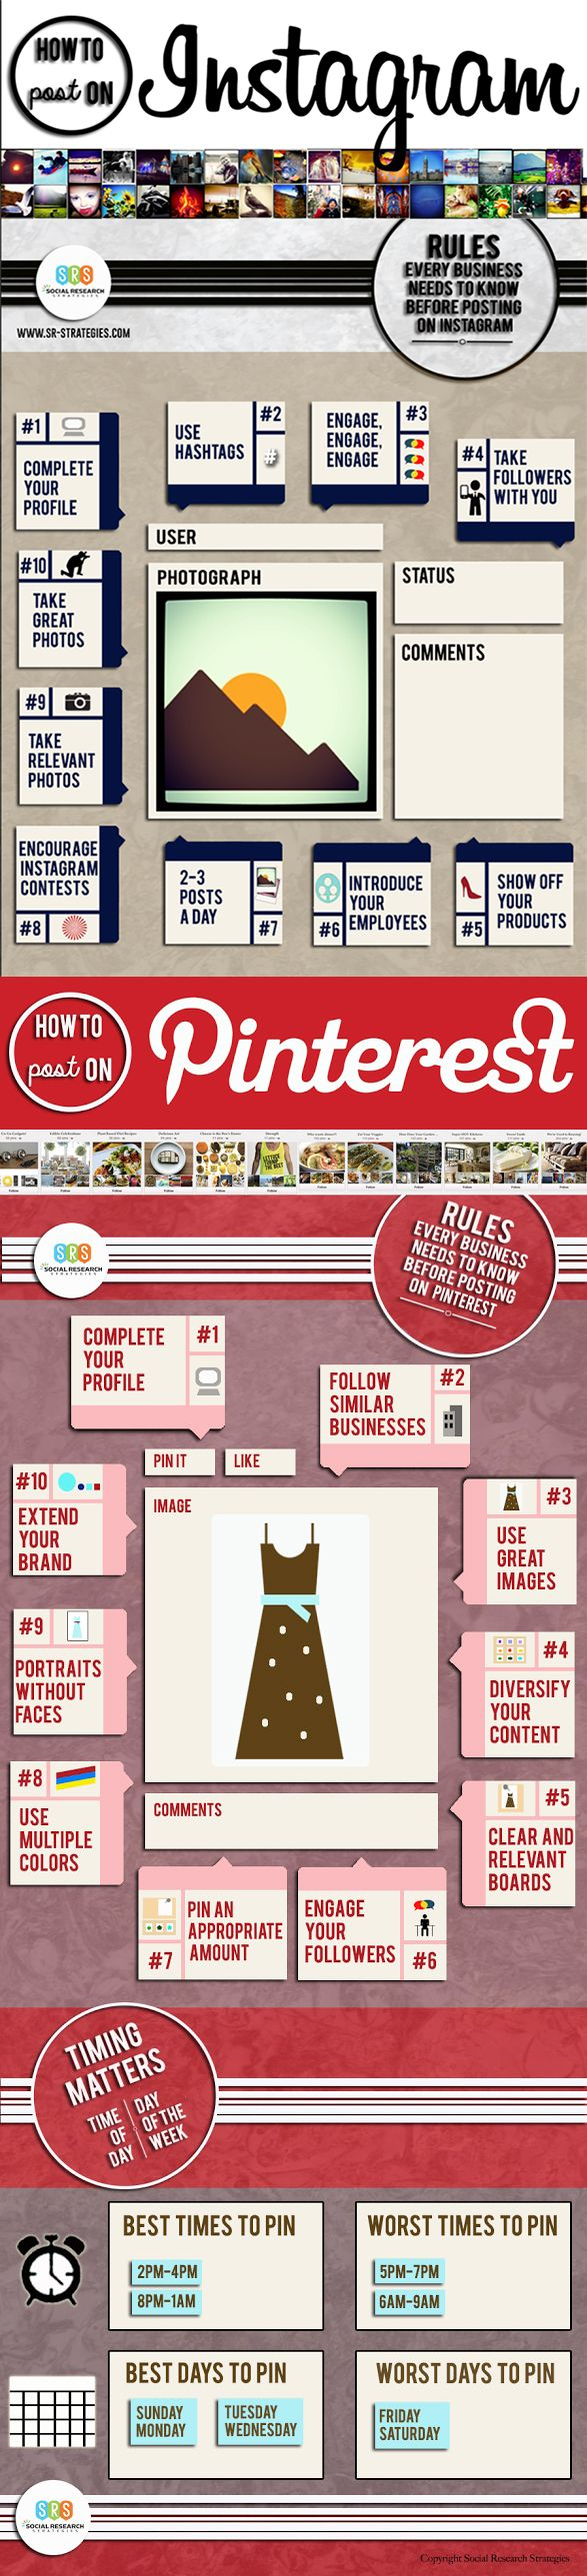 20 Rules Every Business Needs to Know Before Posting on Instagram and Pinterest